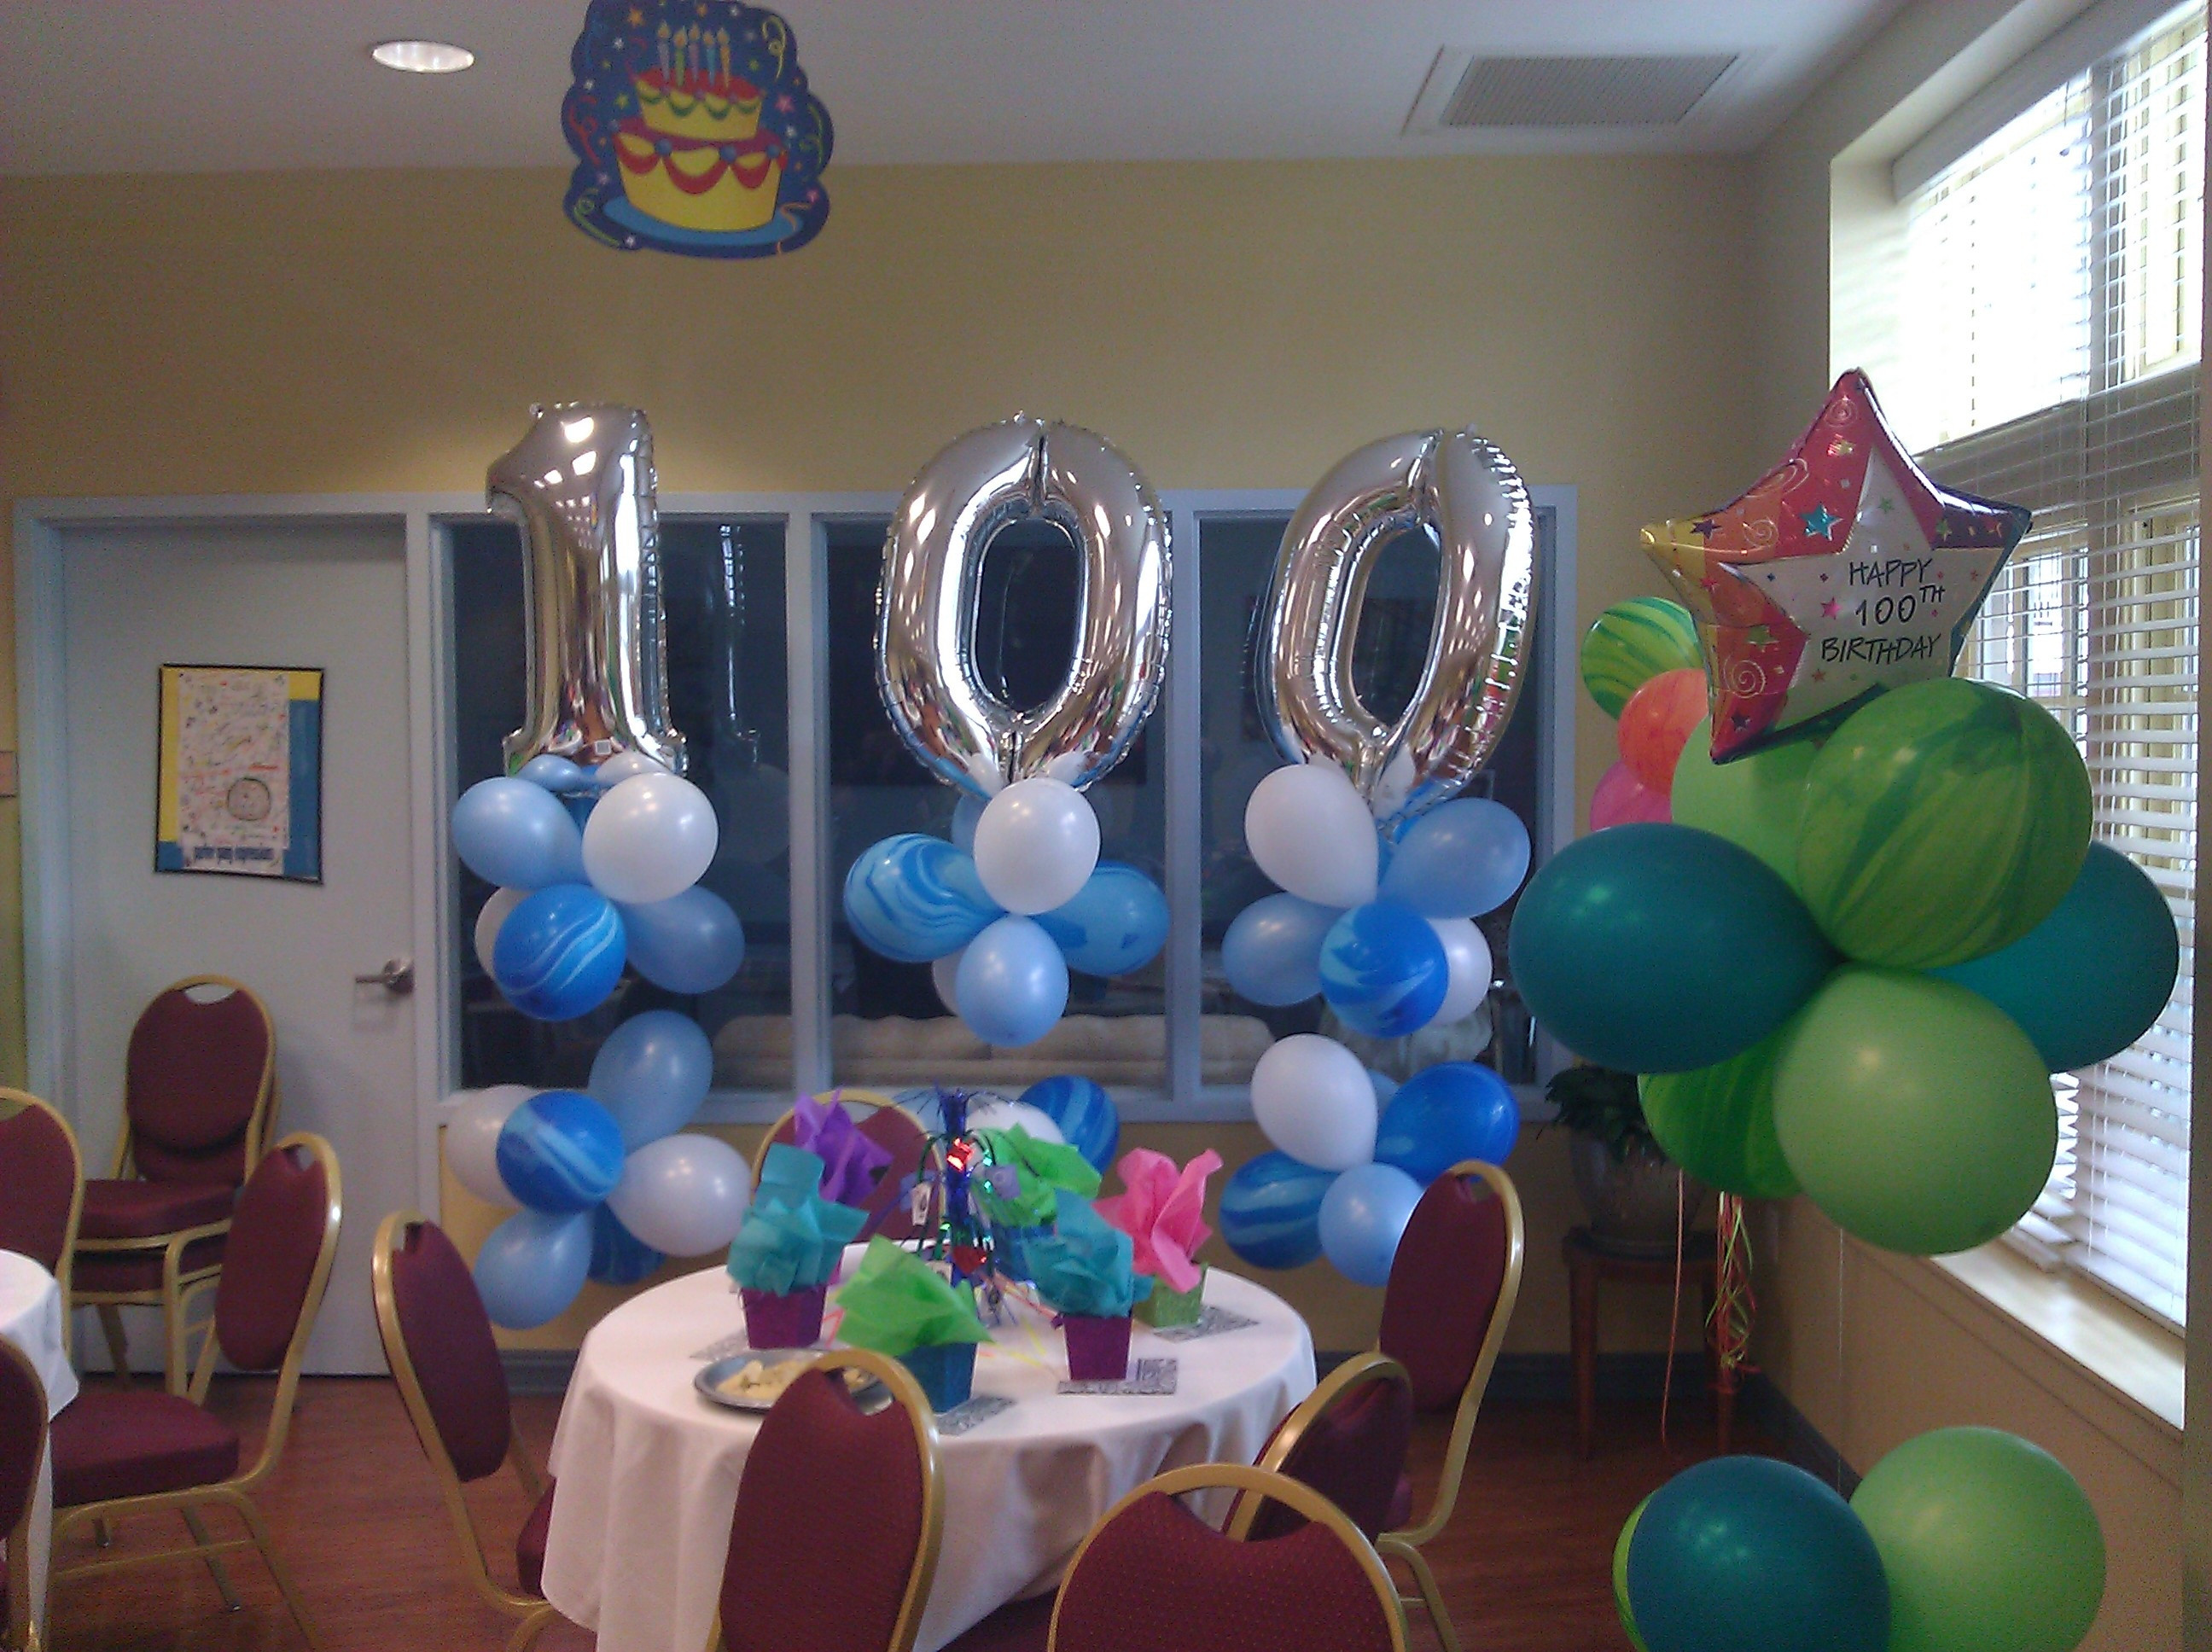 Best ideas about 100th Birthday Ideas . Save or Pin Happy 100th Now.